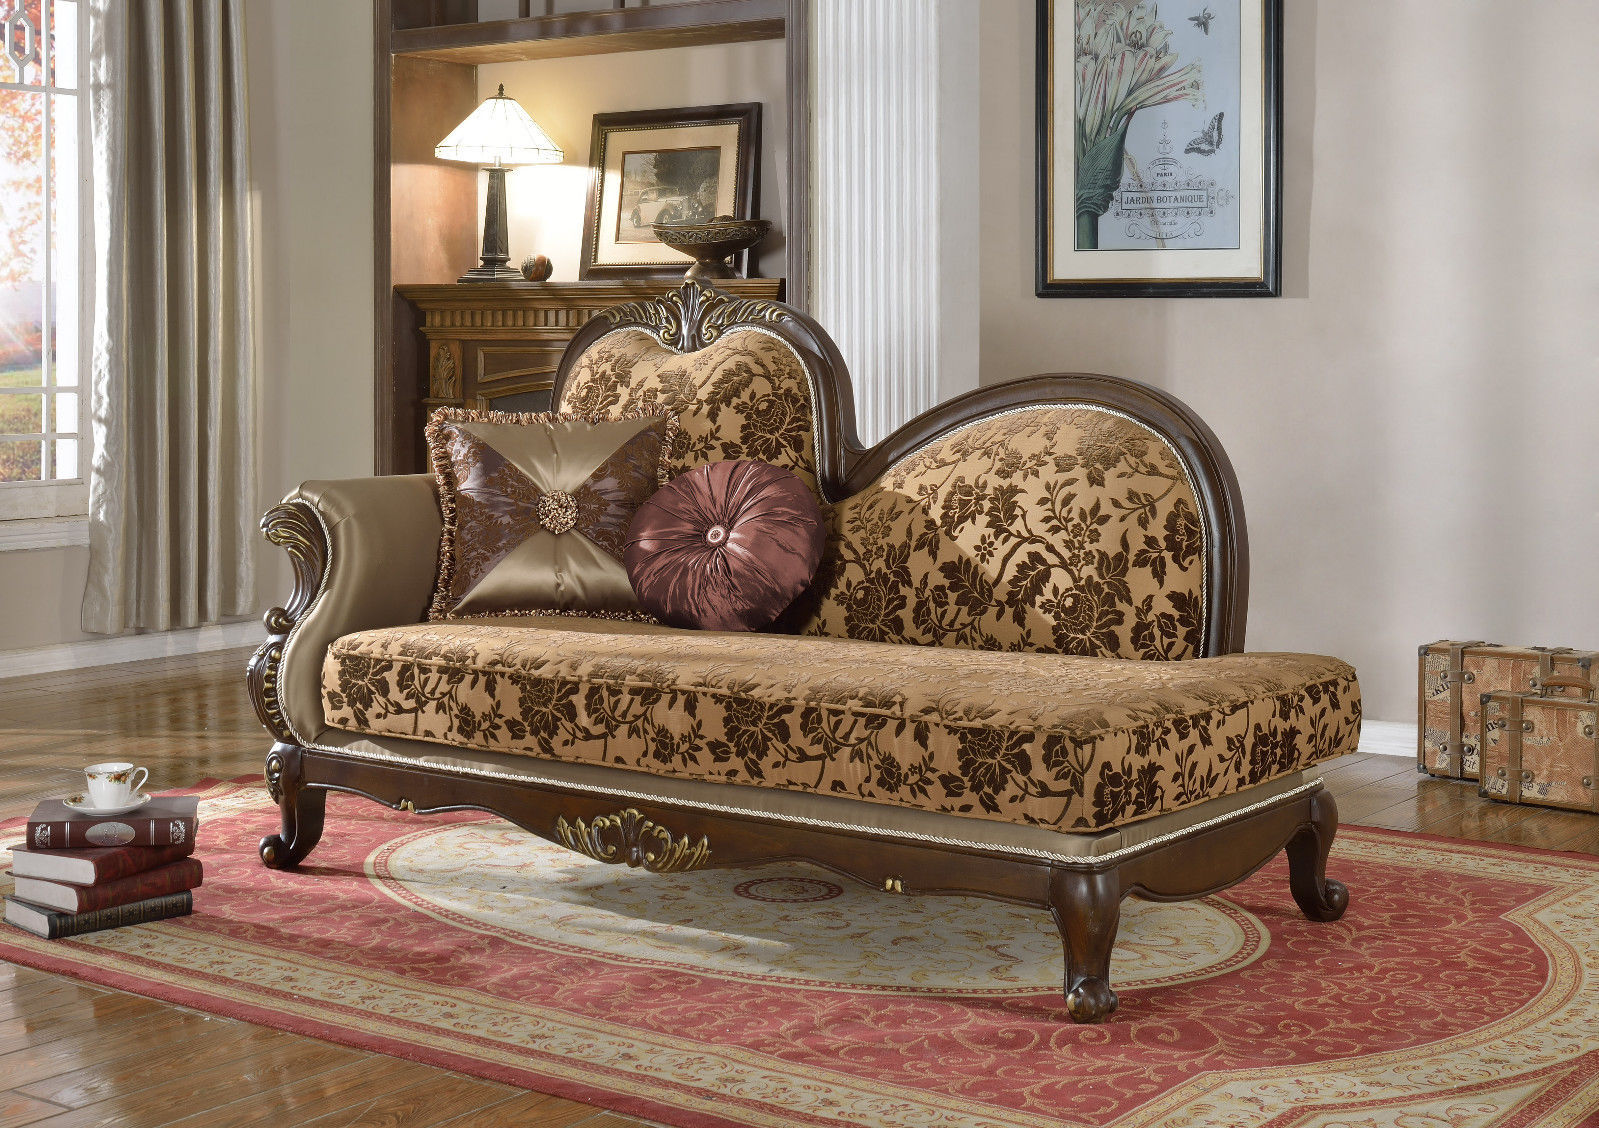 Meridian 610 Catania Living Room Chaise Hand Carved Traditional Style